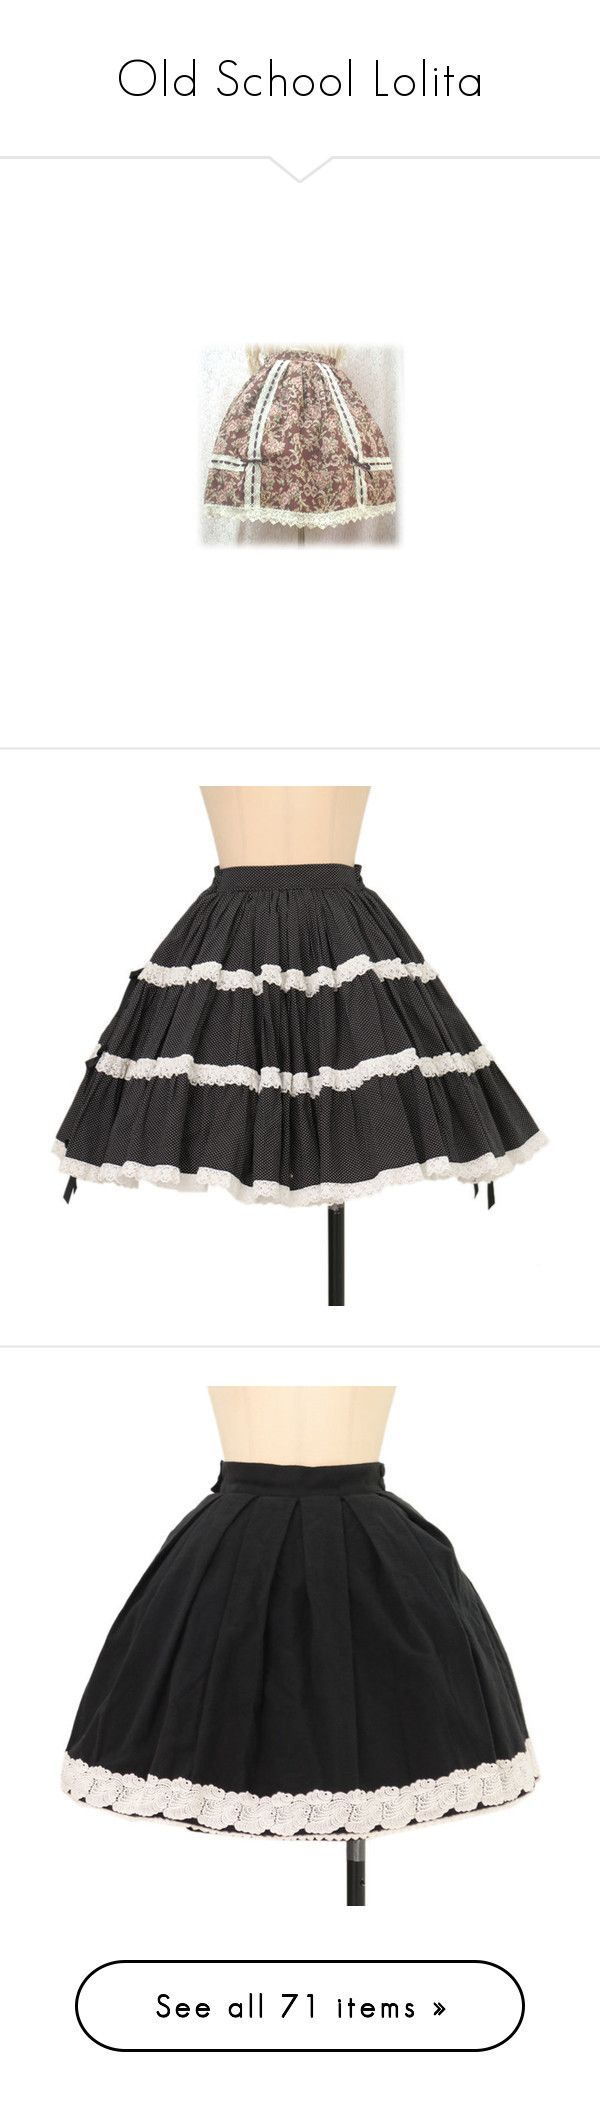 """""""Old School Lolita"""" by filthyqueen ❤ liked on Polyvore featuring skirts, wet look skirt, shiny skirt, brown skirt, shoes, costumes, cowgirl halloween costume, cosplay halloween costumes, gothic lolita costume and goth halloween costumes"""